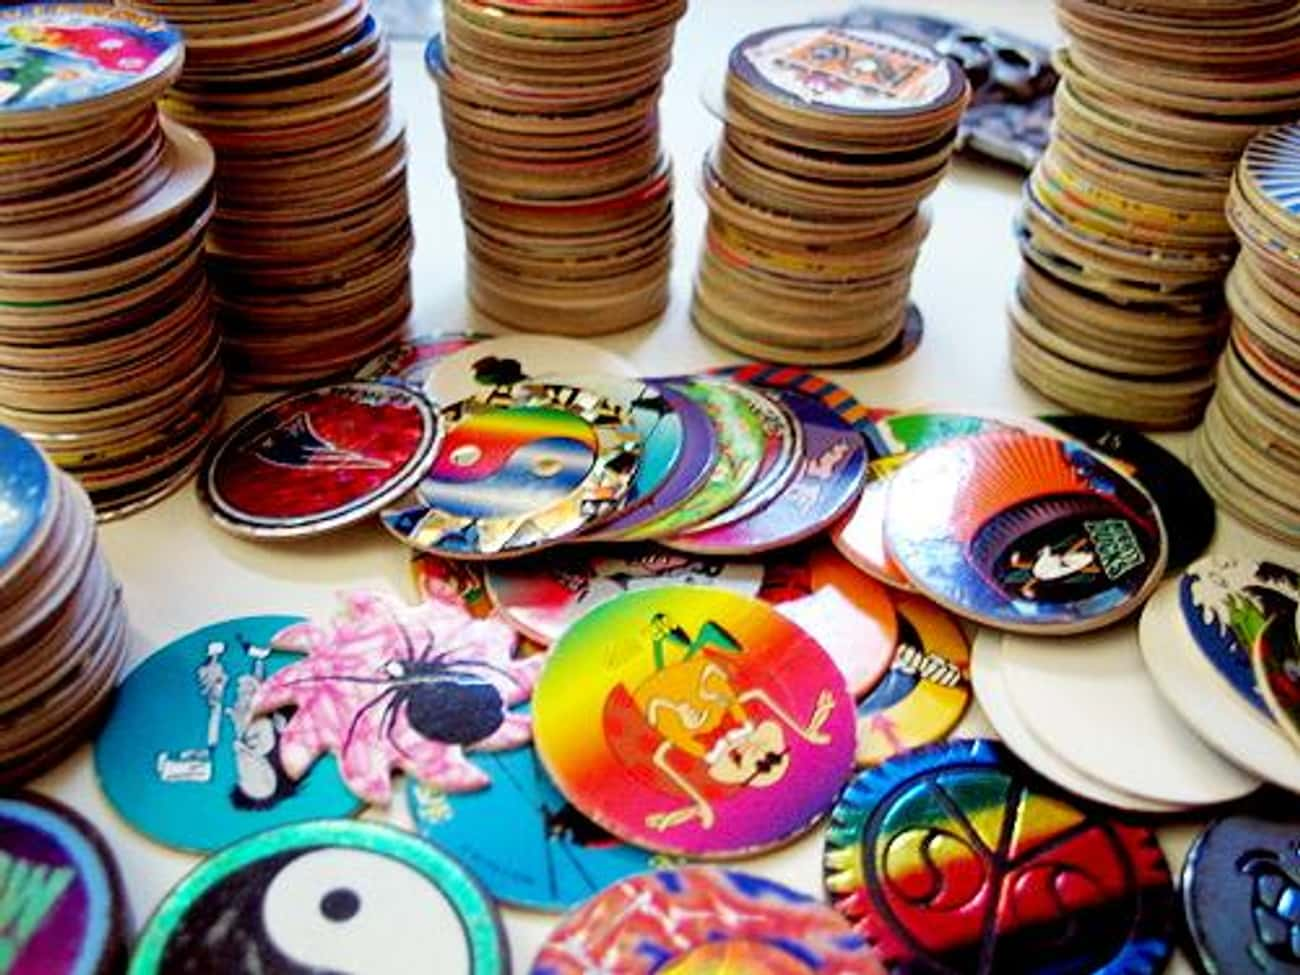 Pogs is listed (or ranked) 4 on the list The Most Worthless '90s Collectibles You Spent Money On